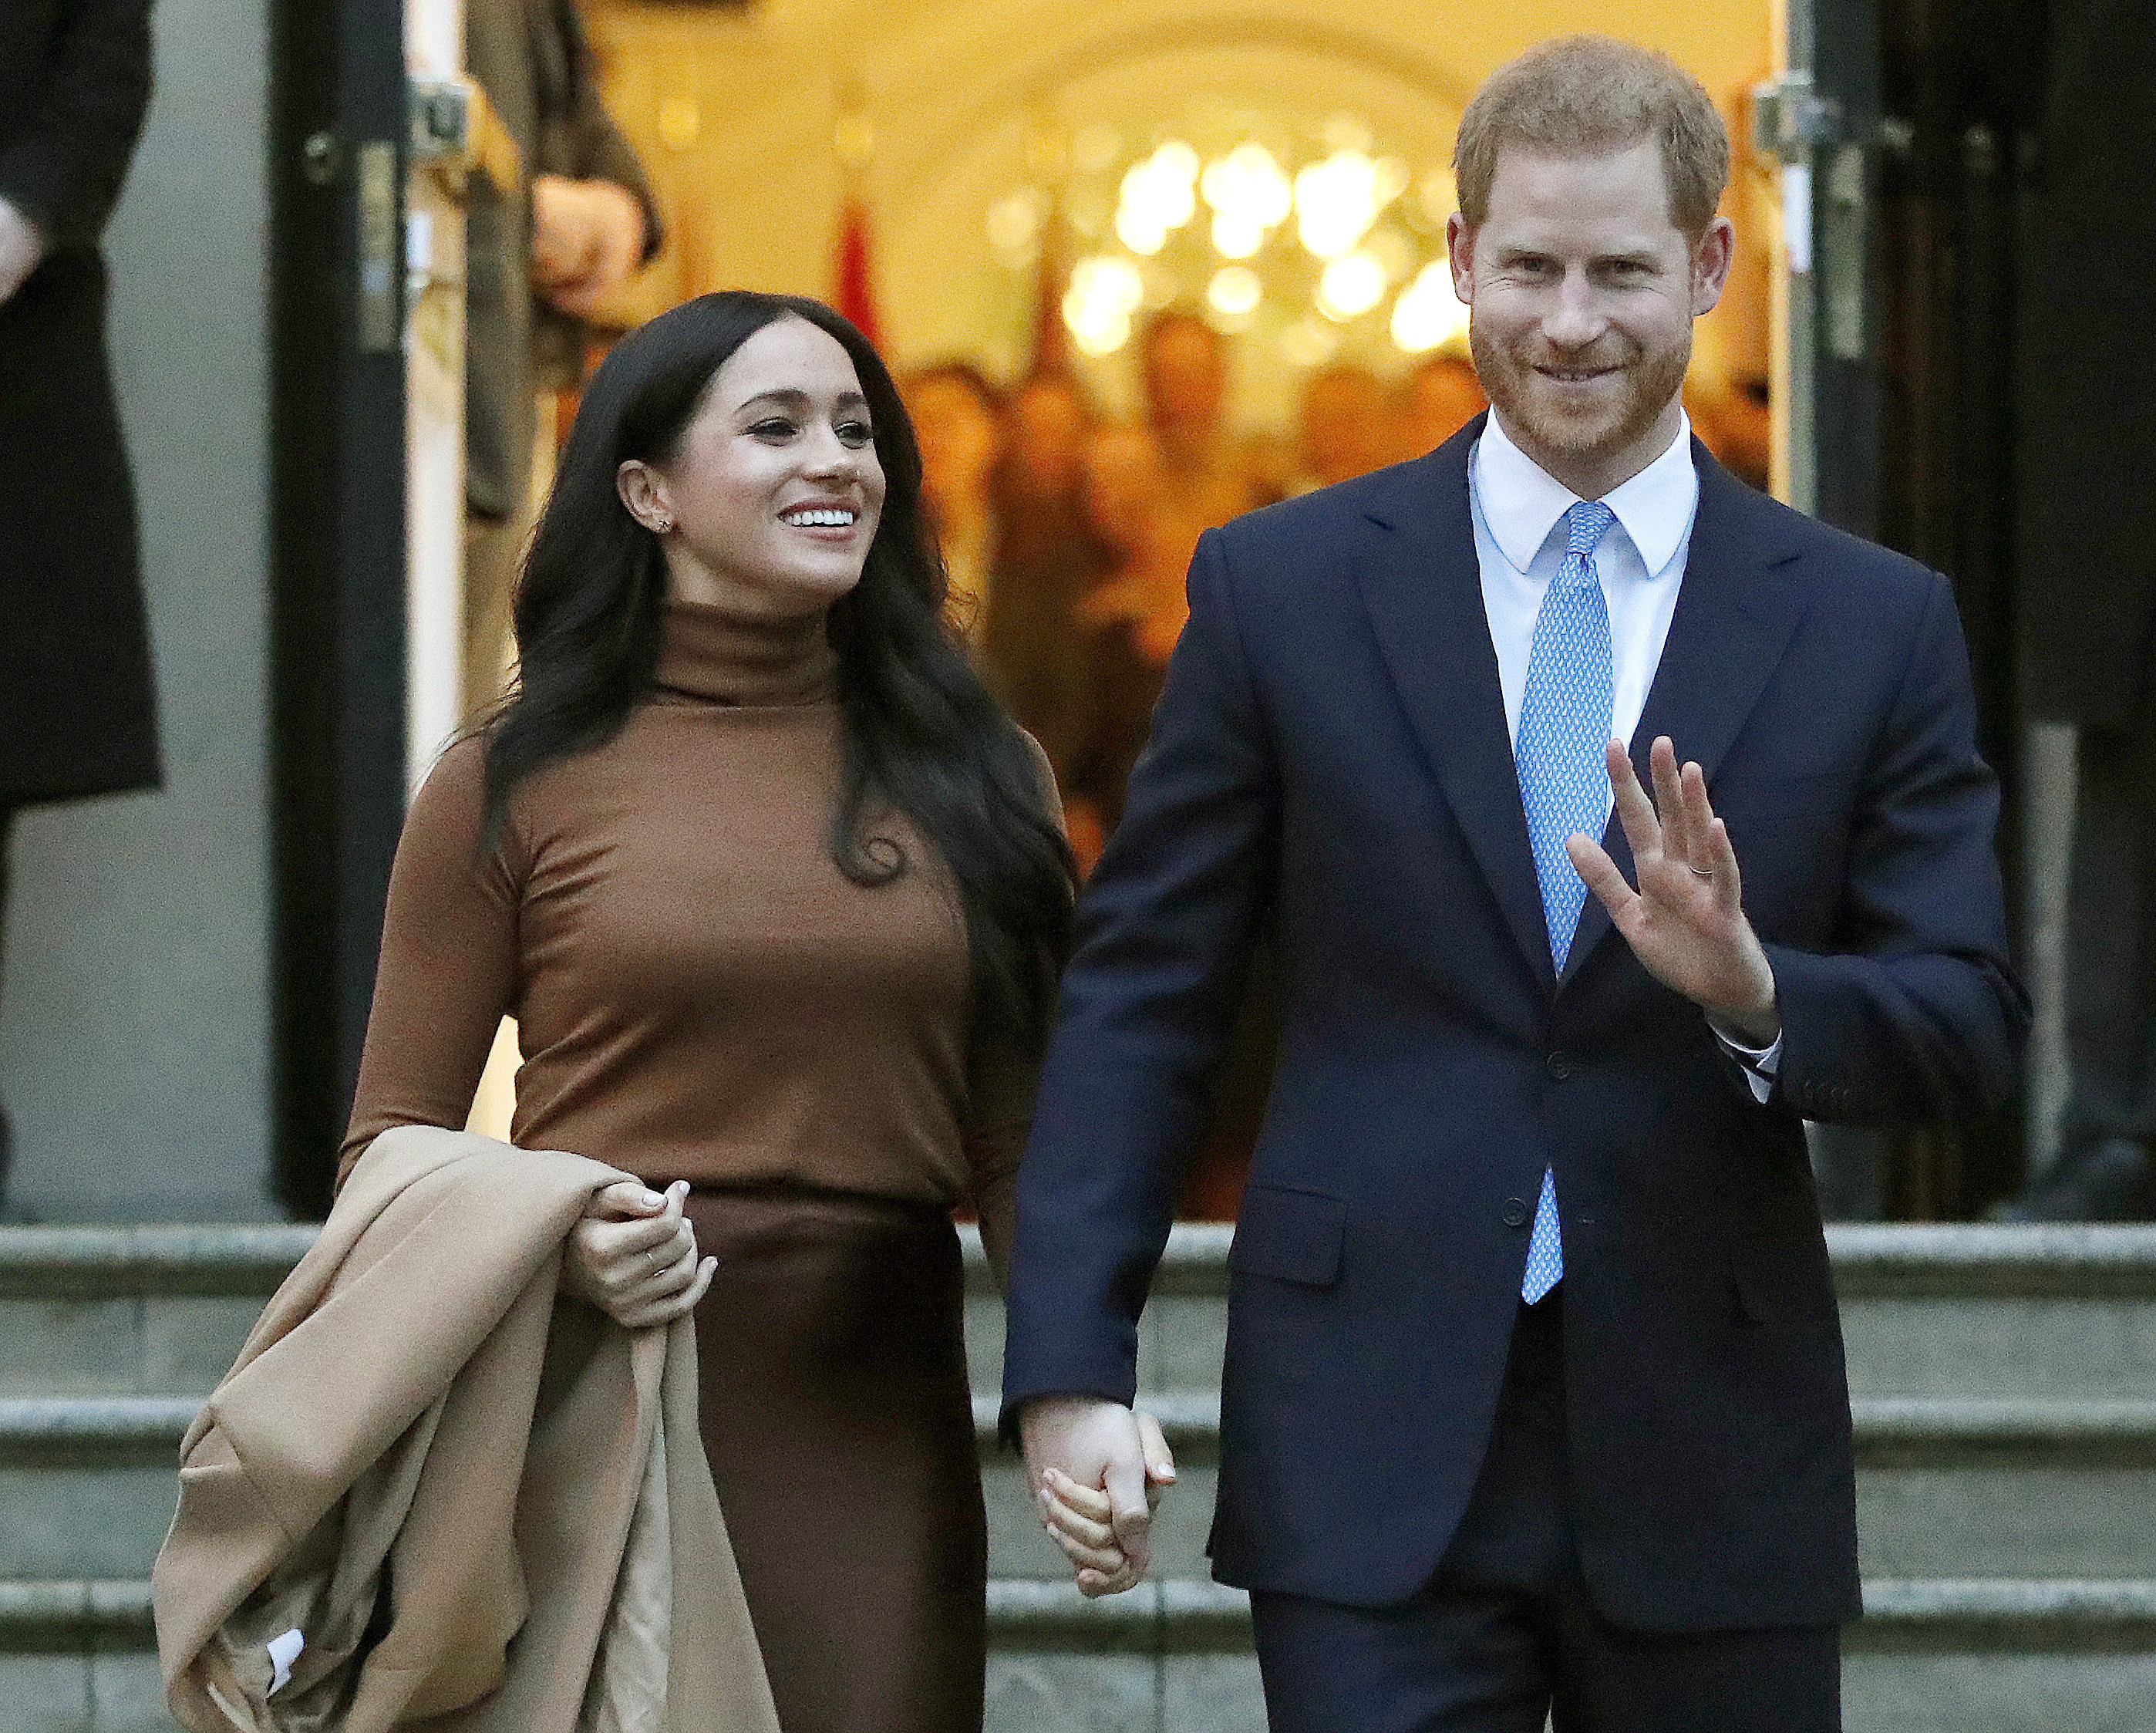 Harry Greeneville Tn Halloween 2020 Prince Harry and Meghan sign production deal with Netflix | WJHL